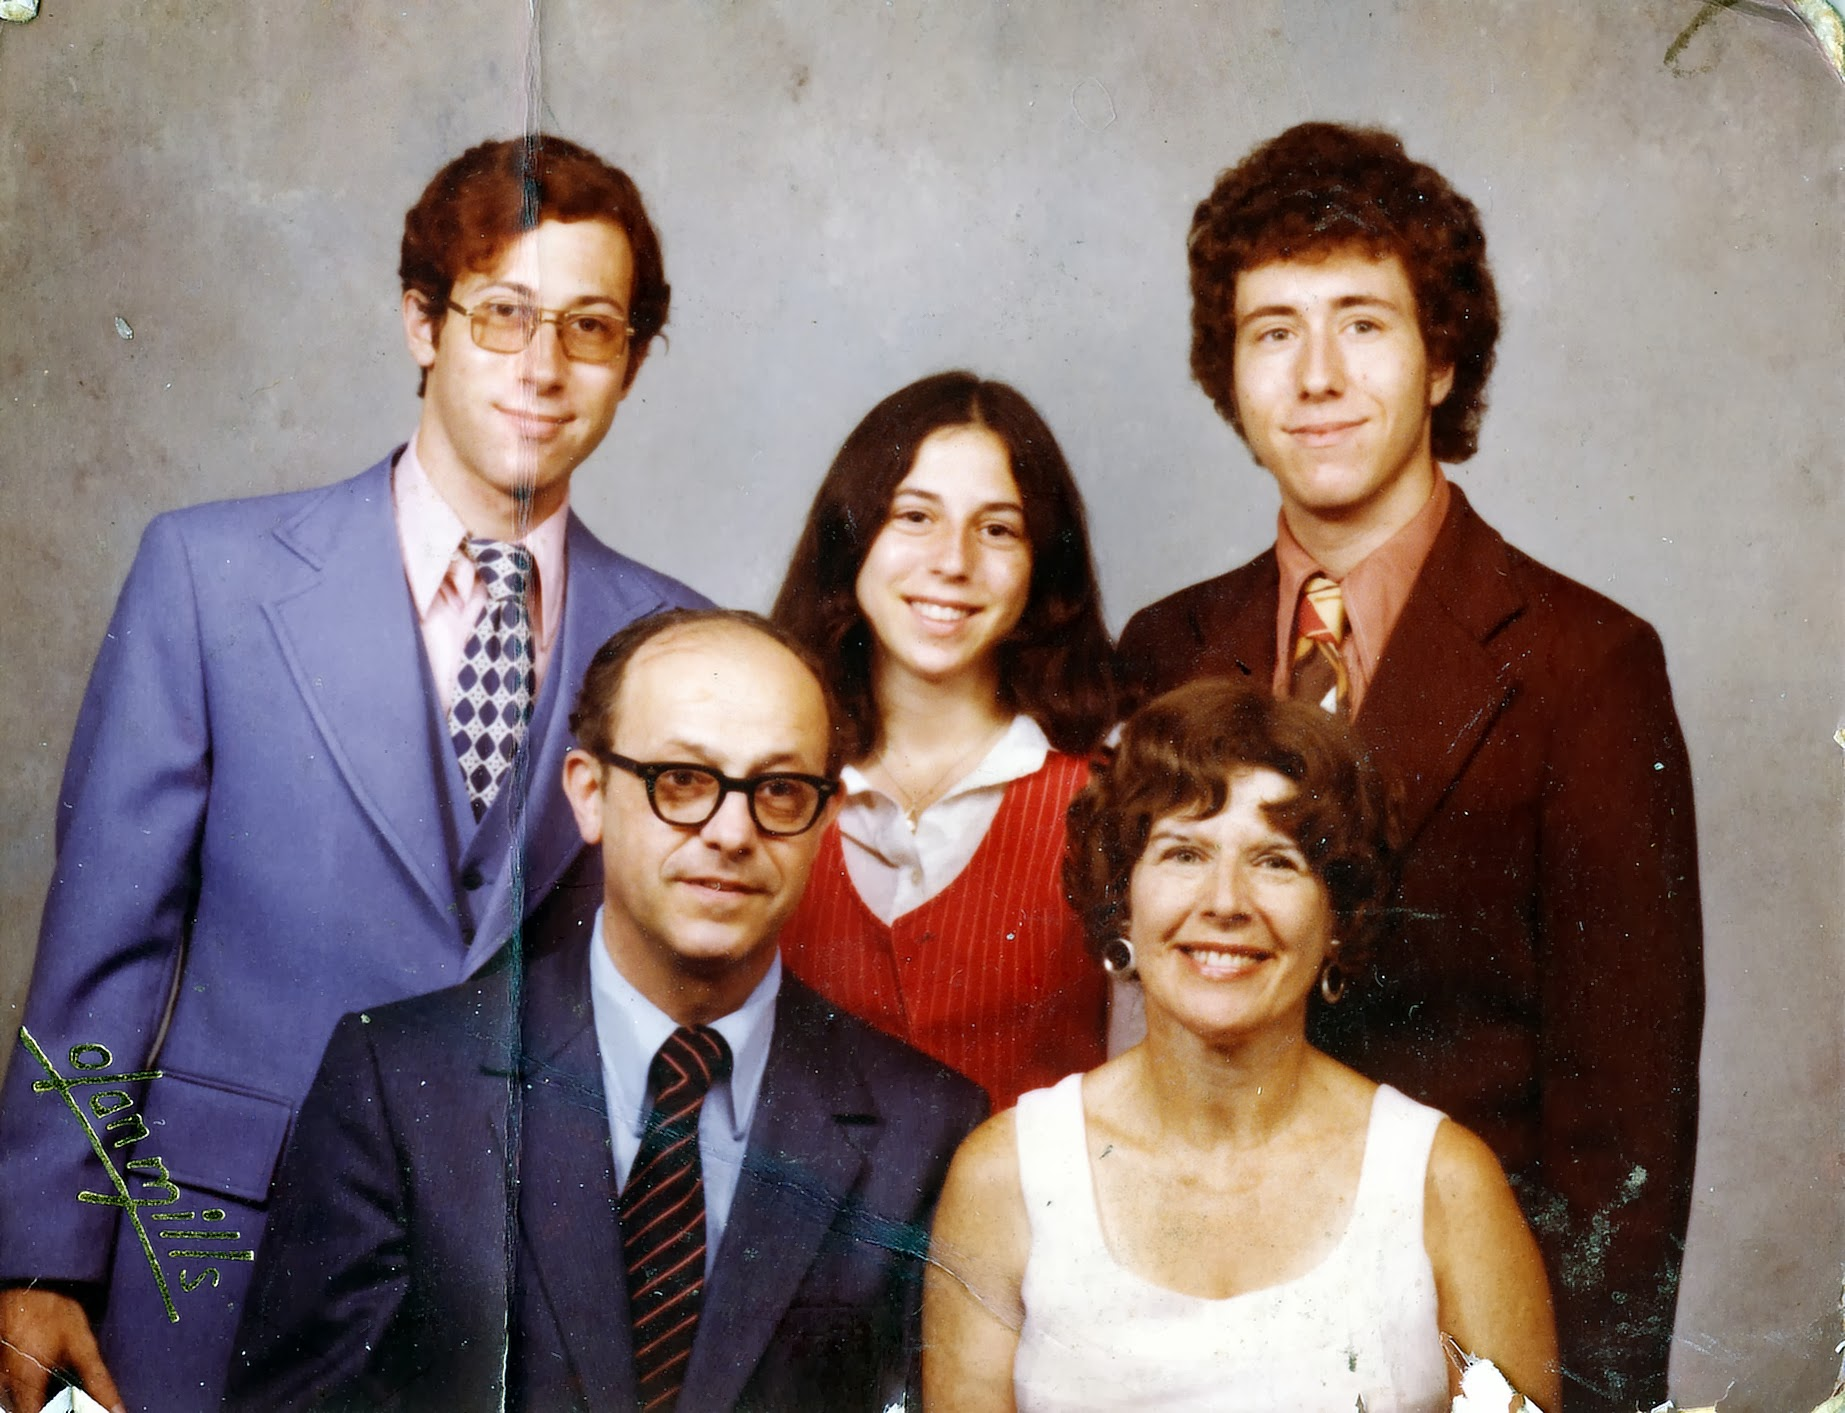 1974 Stregevsky family portrait. Front : Sam and Ruth. Back: Barry, Diane, and Paul.